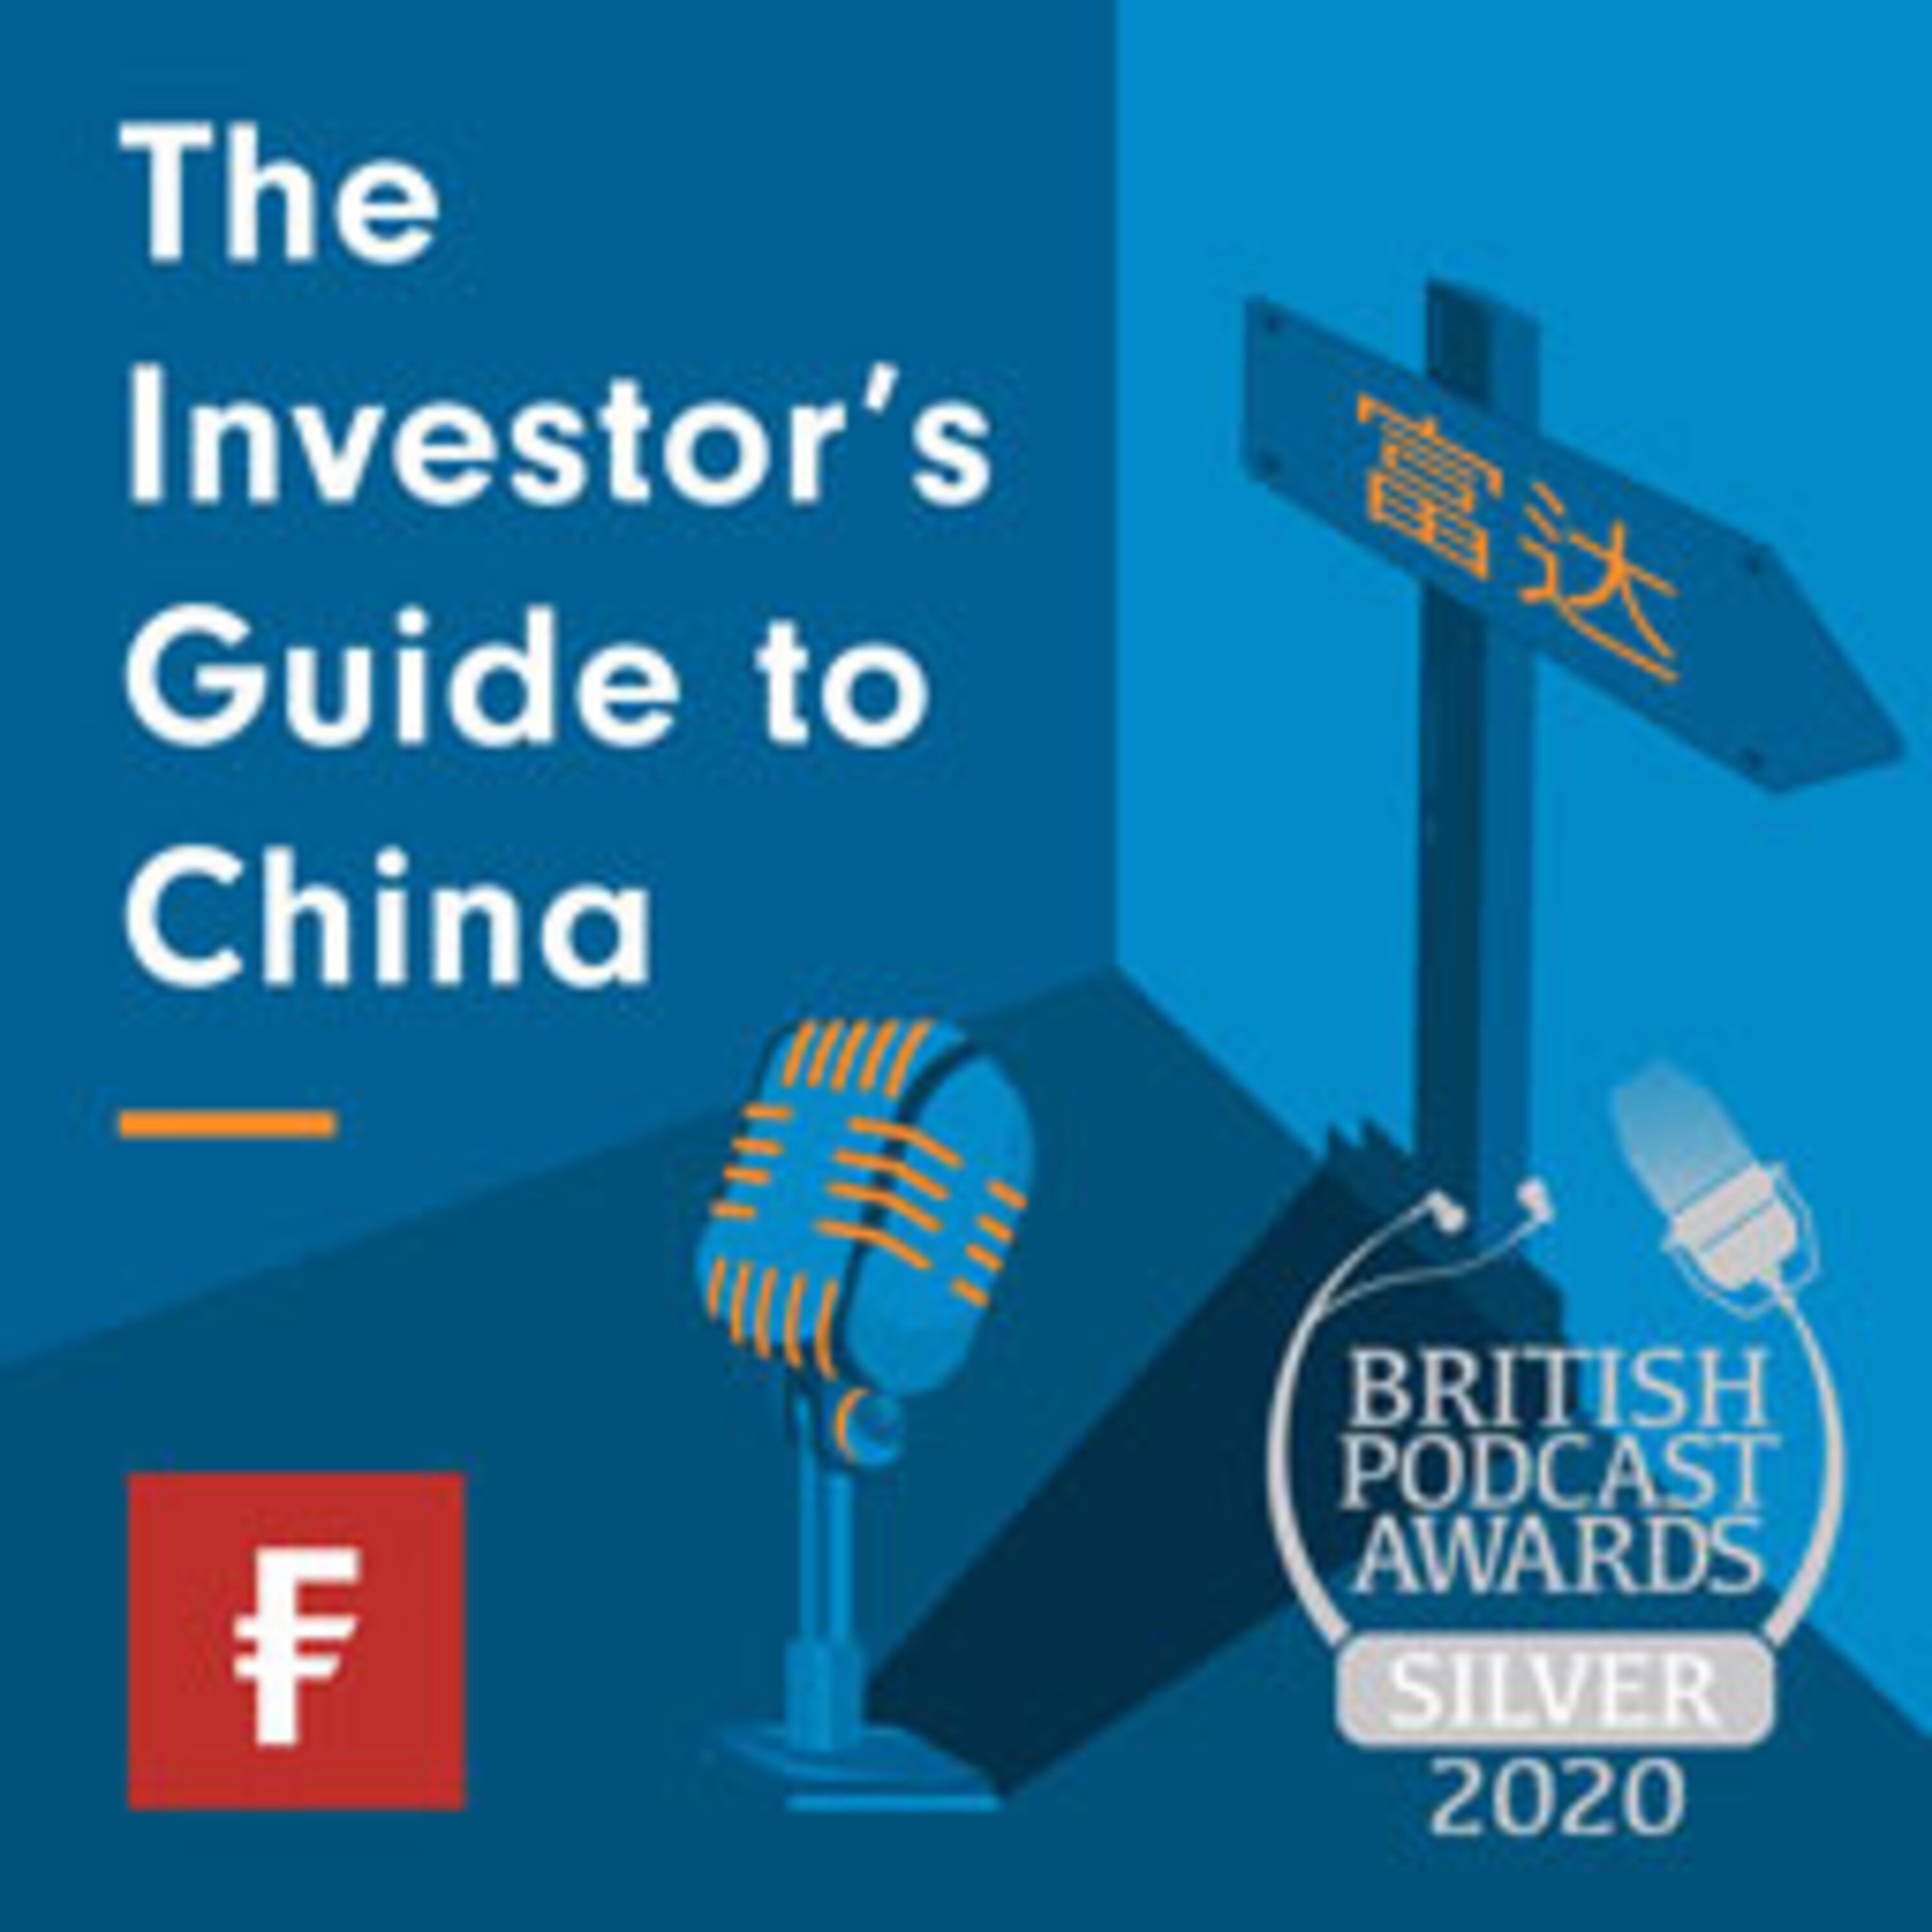 The Investor's Guide to China: Trade and growth (#8)